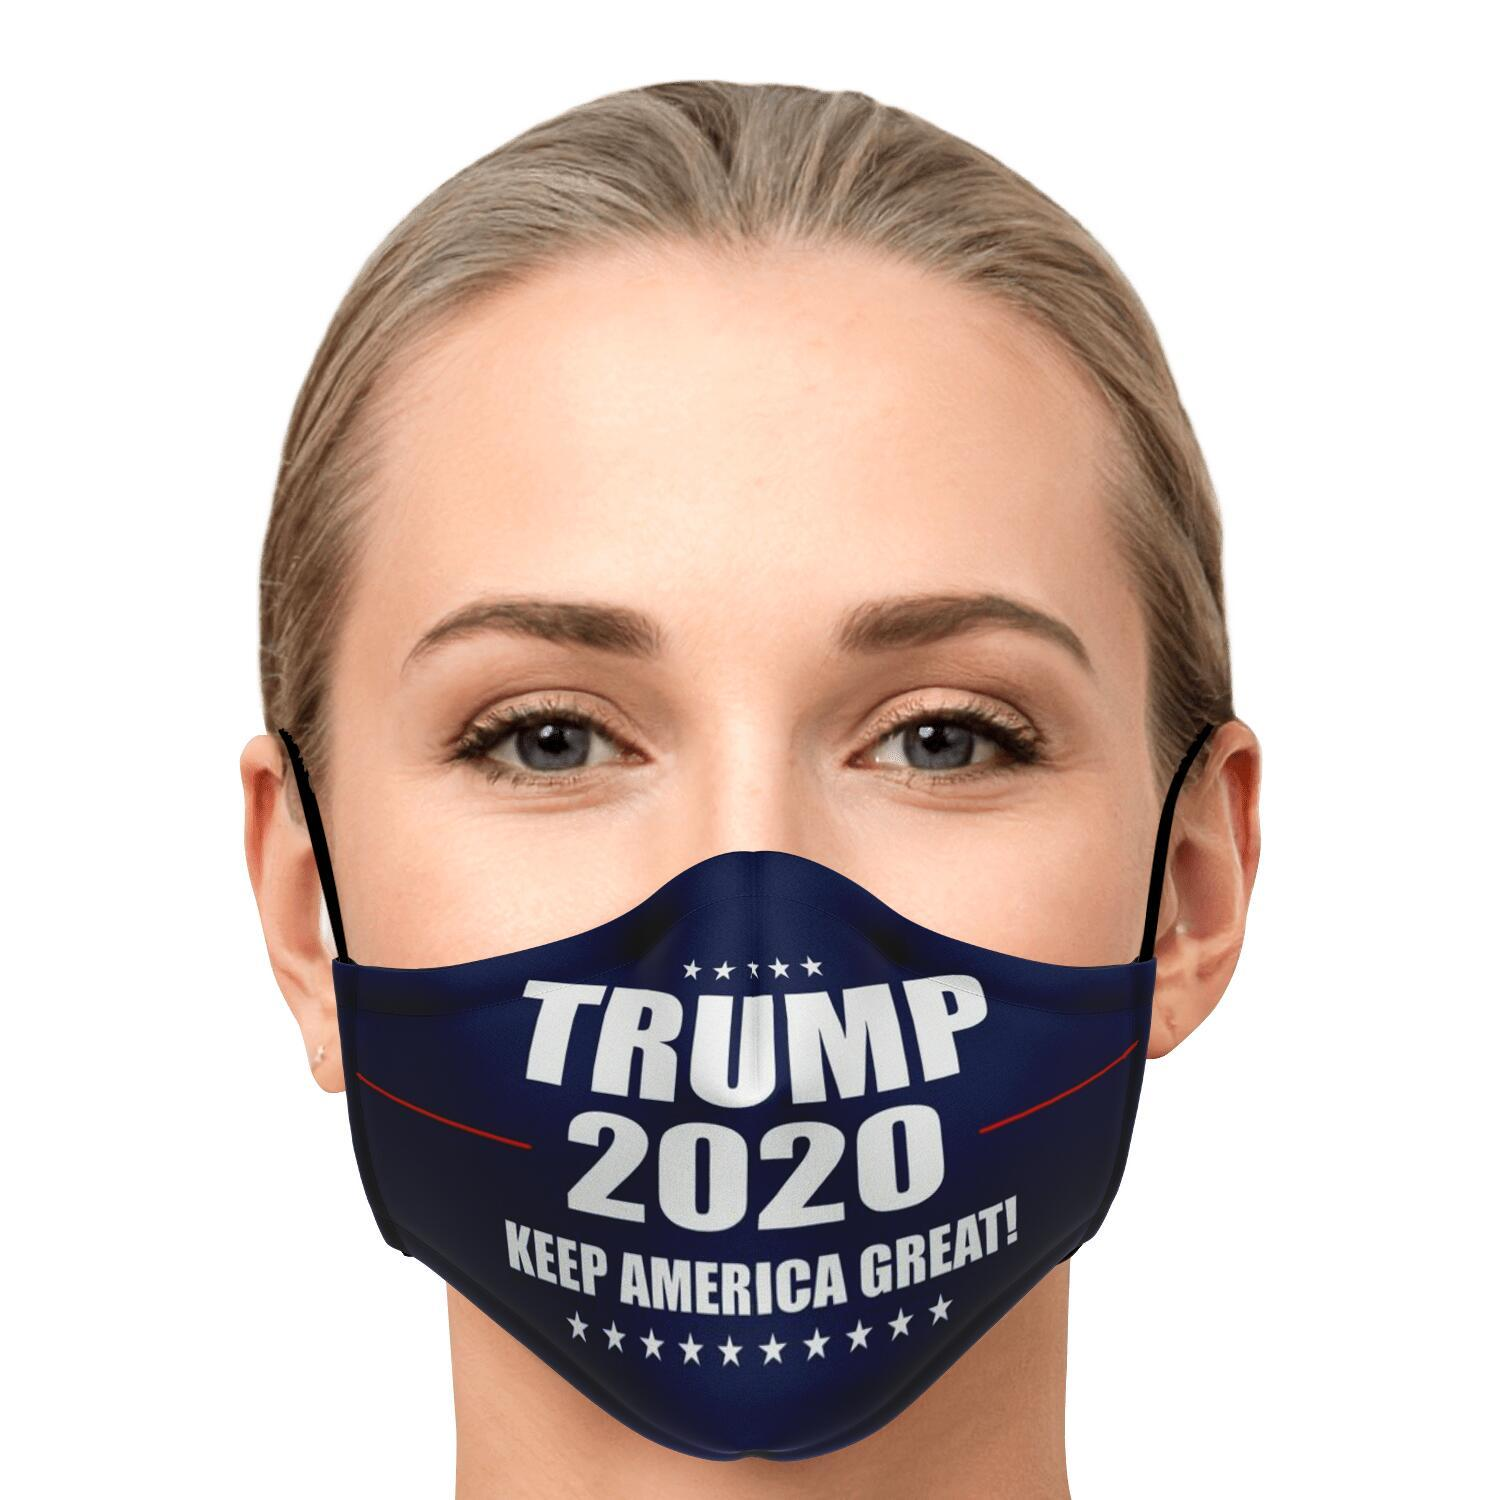 Keep America Great Trump 2020 Face Mask 1